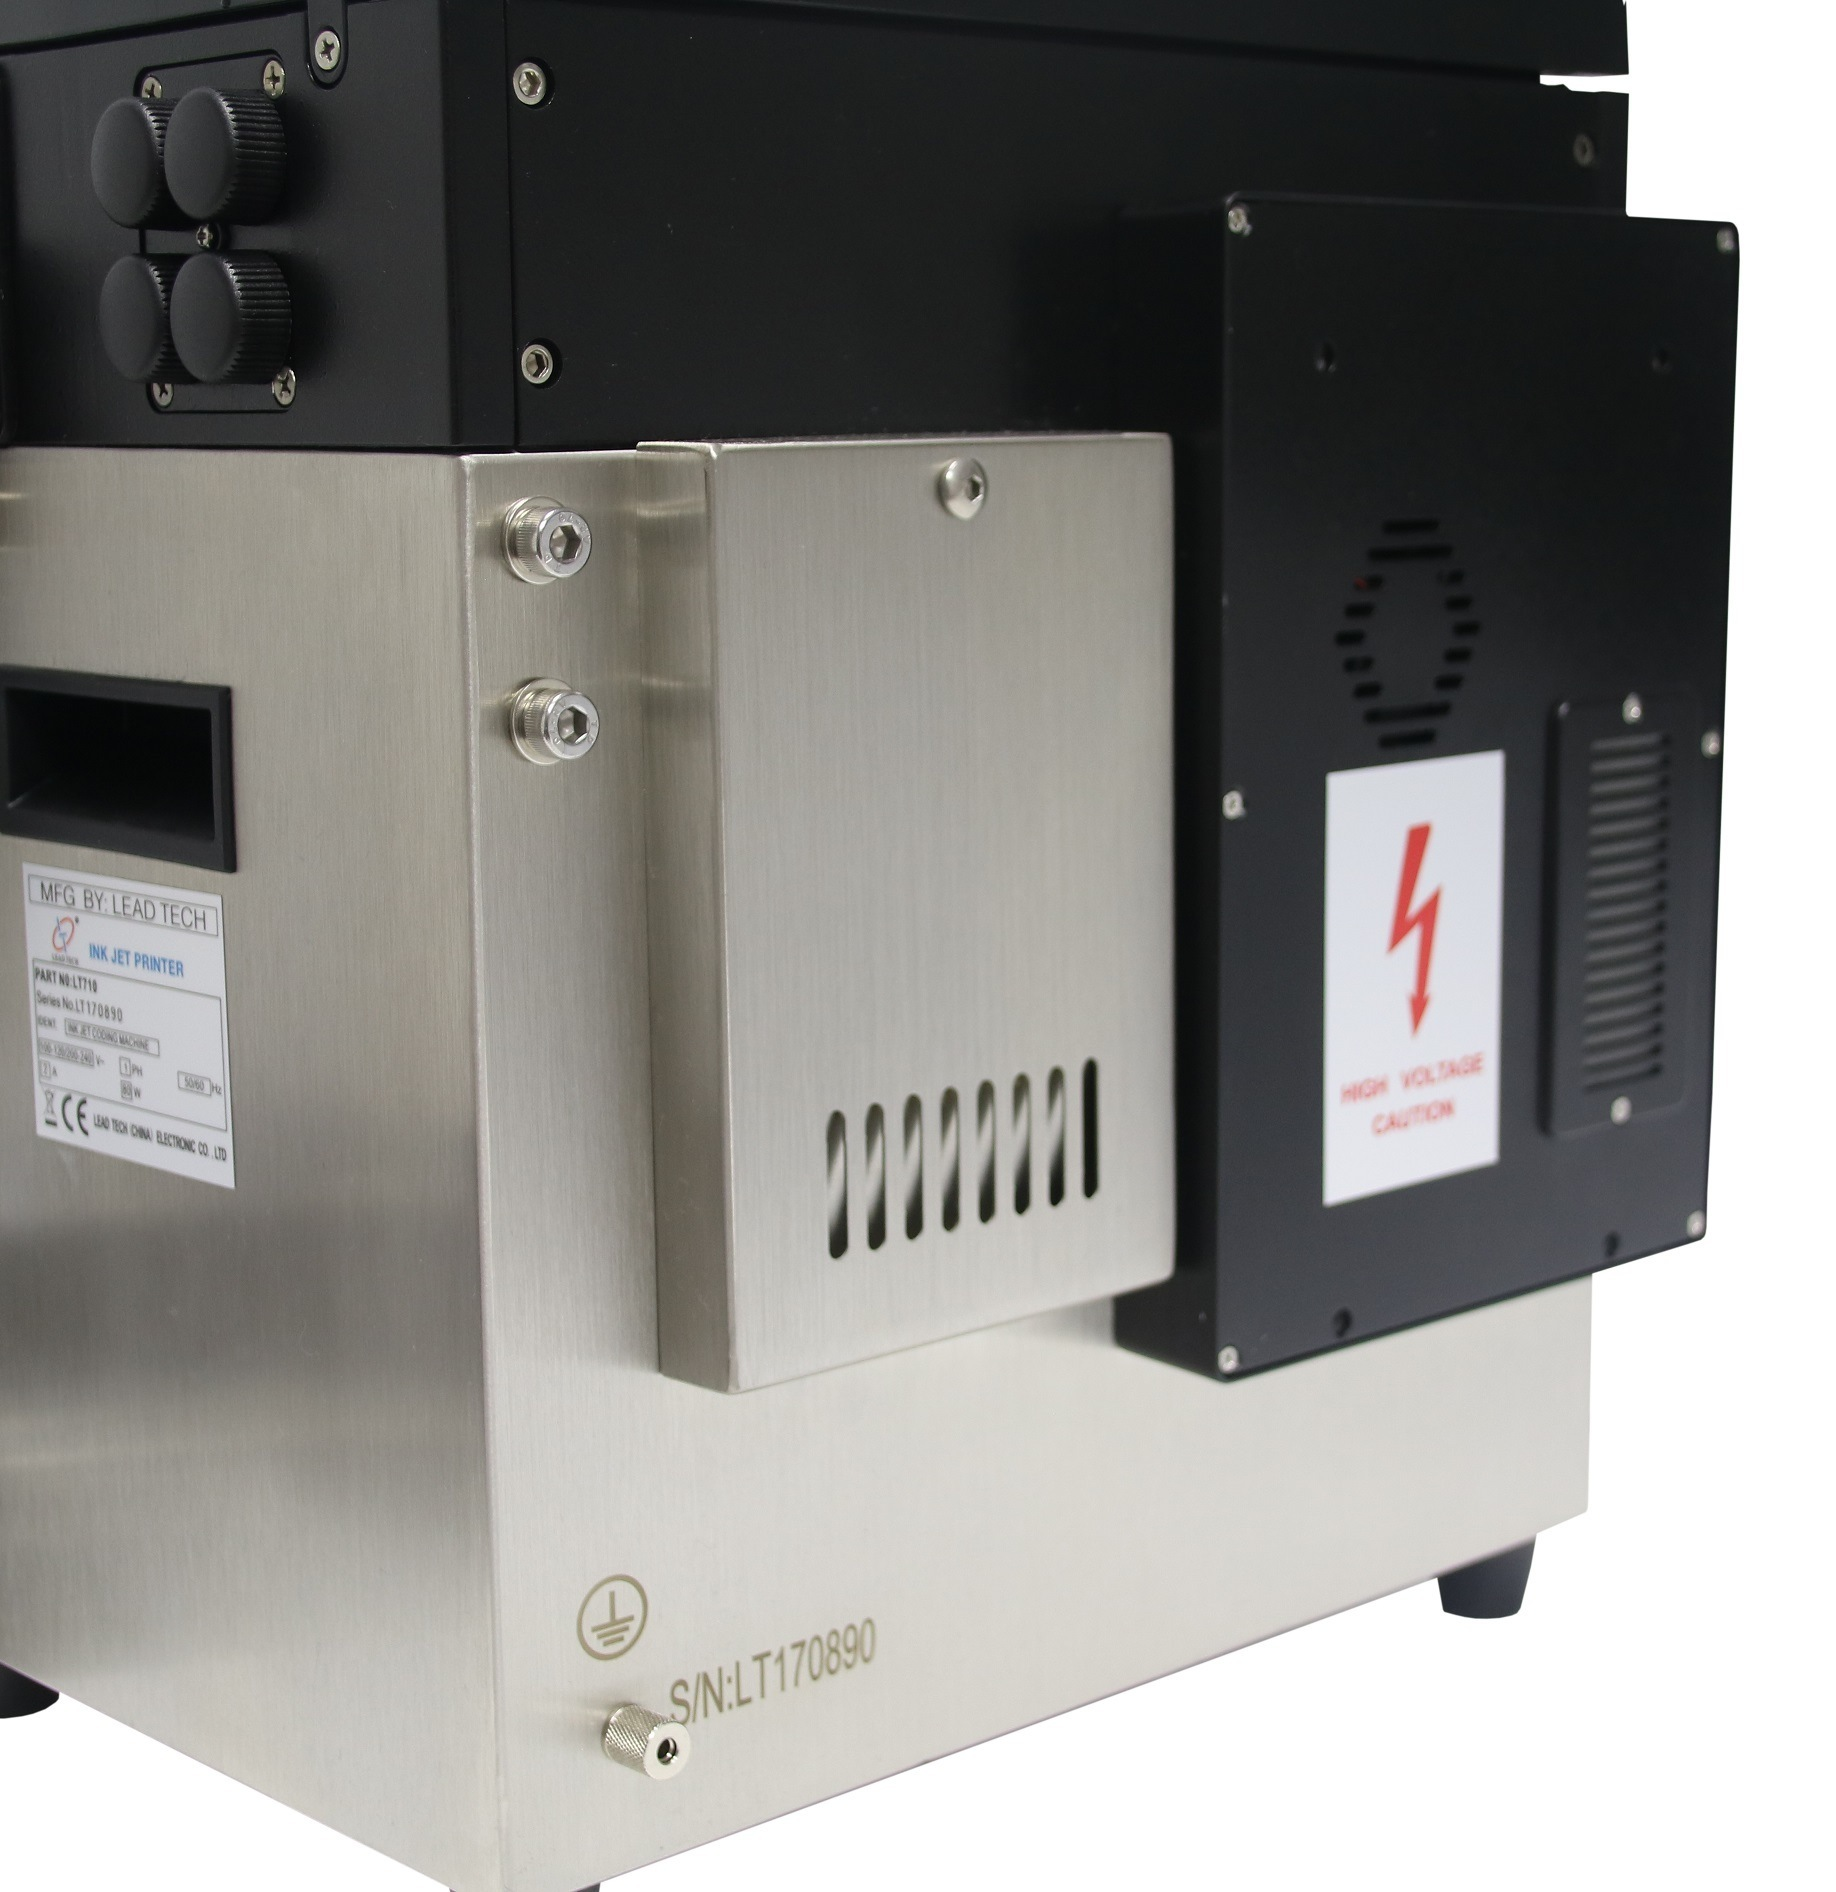 Lead Tech Lt760 Continuous Inkjet Printer for HDPE Coding